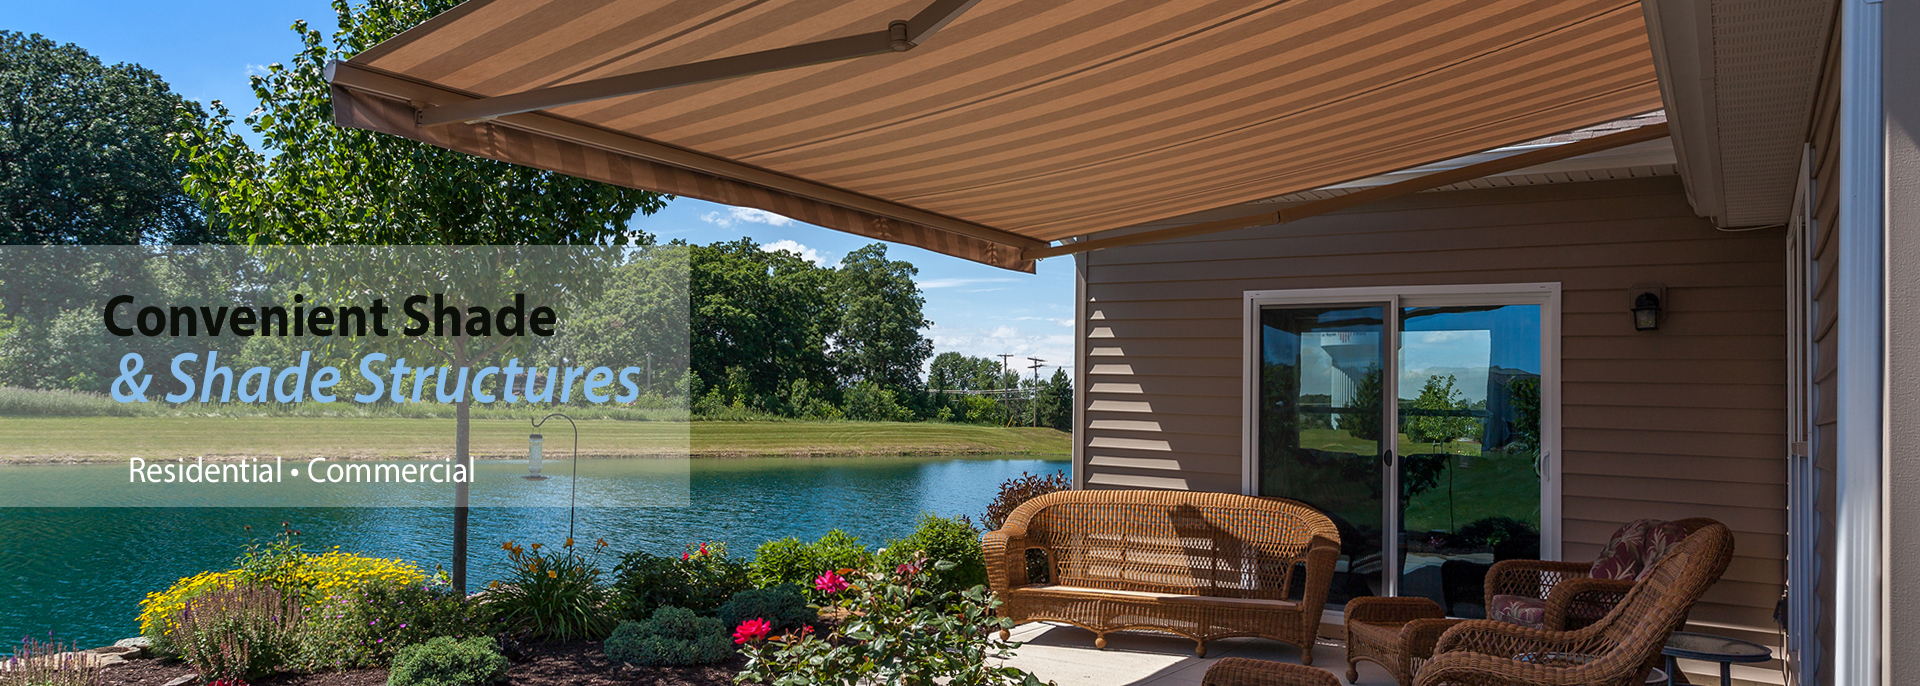 Maryland Awning Company